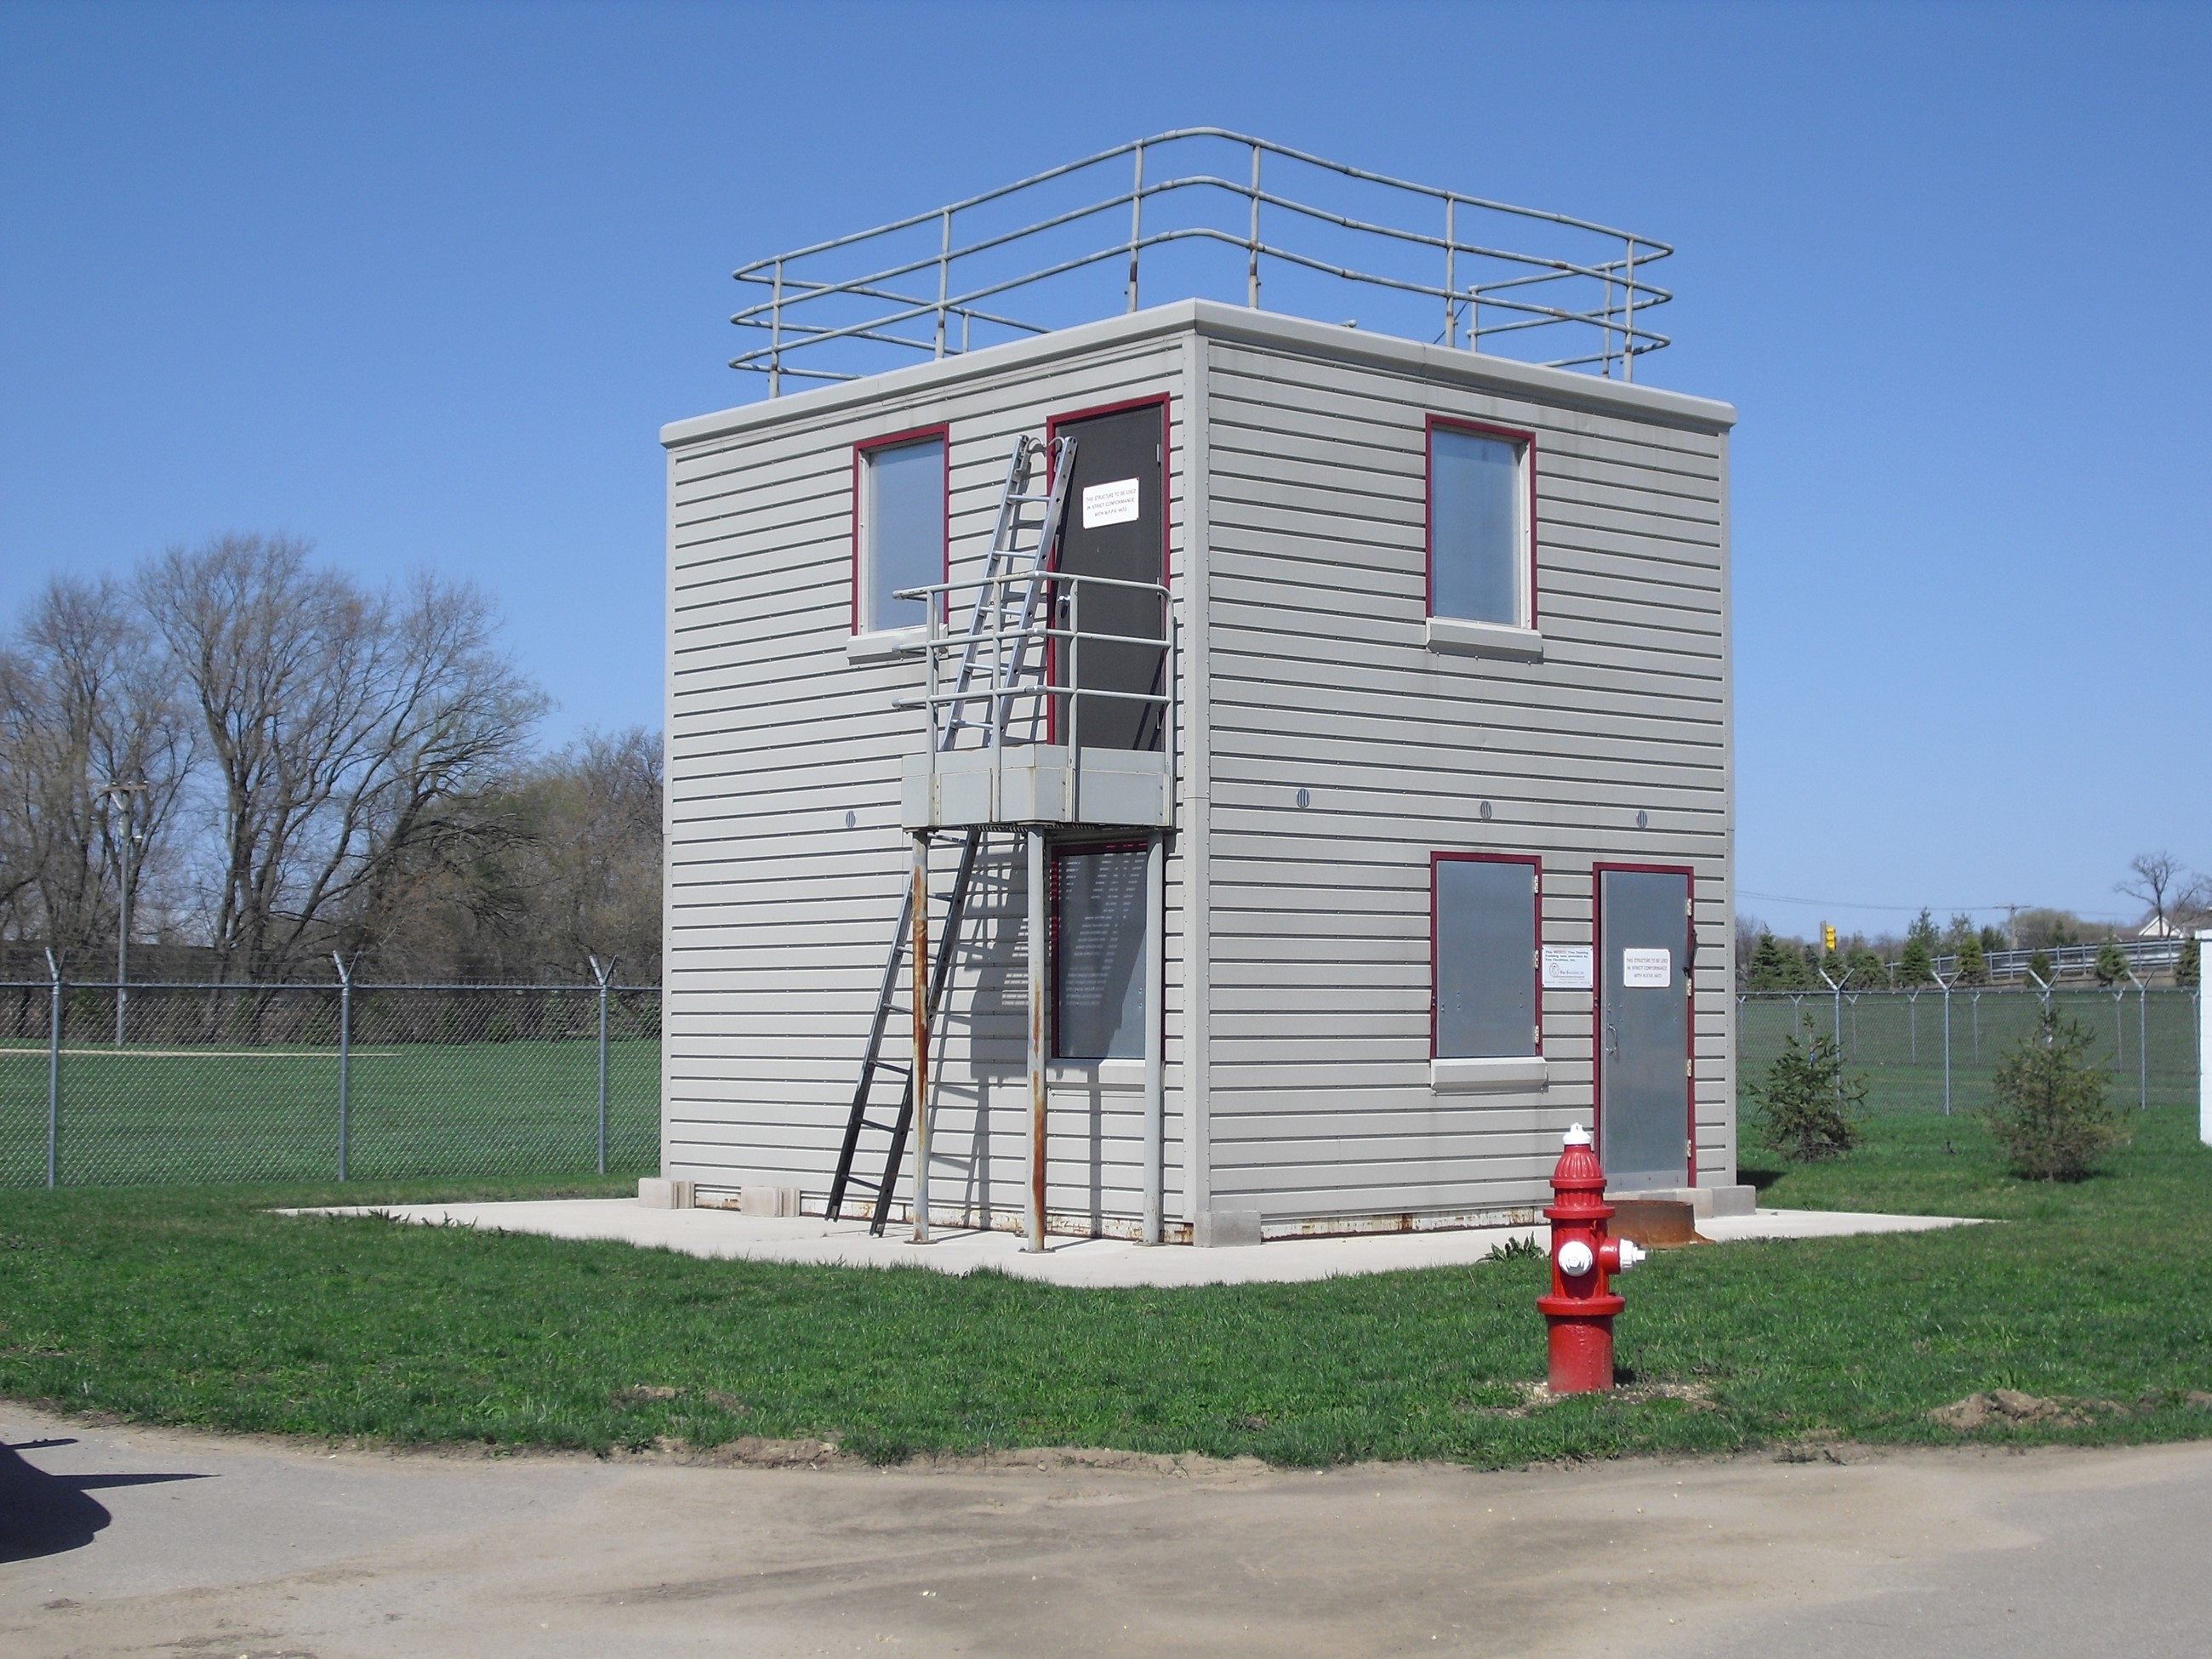 The burn tower located at the Fire Department's training facility